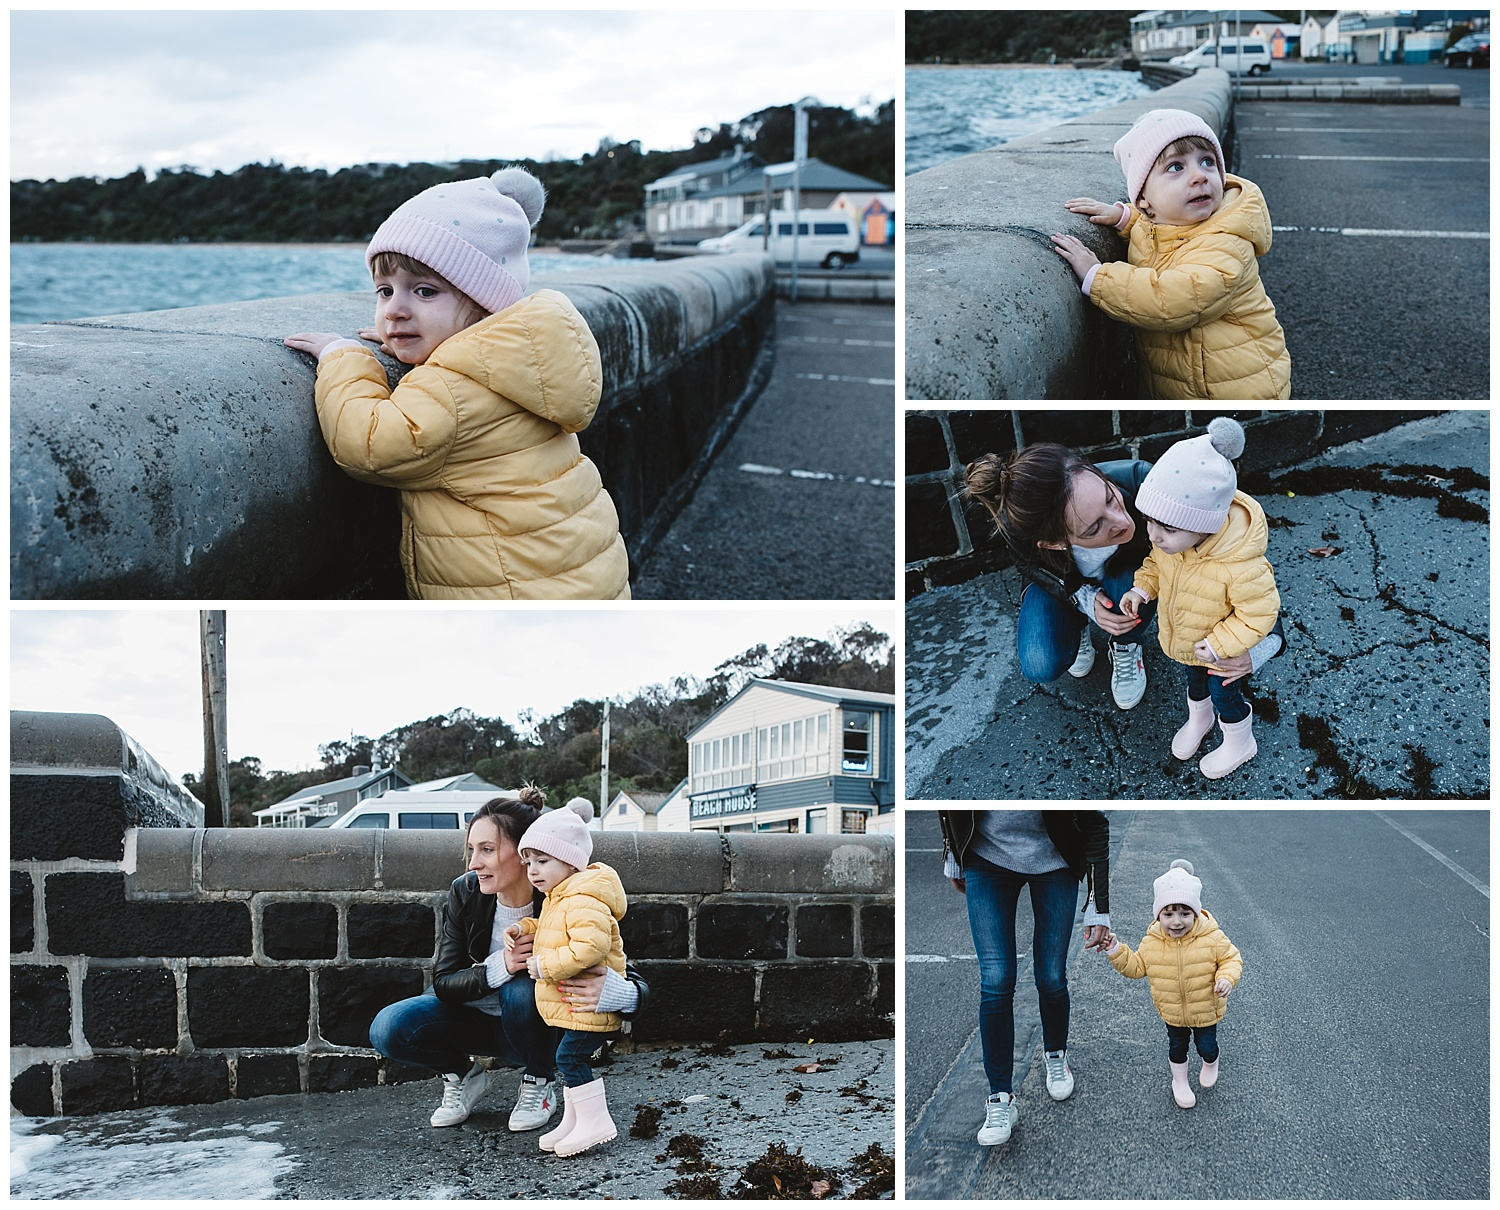 black rock family outdoor photography session, toddler bayside portrait